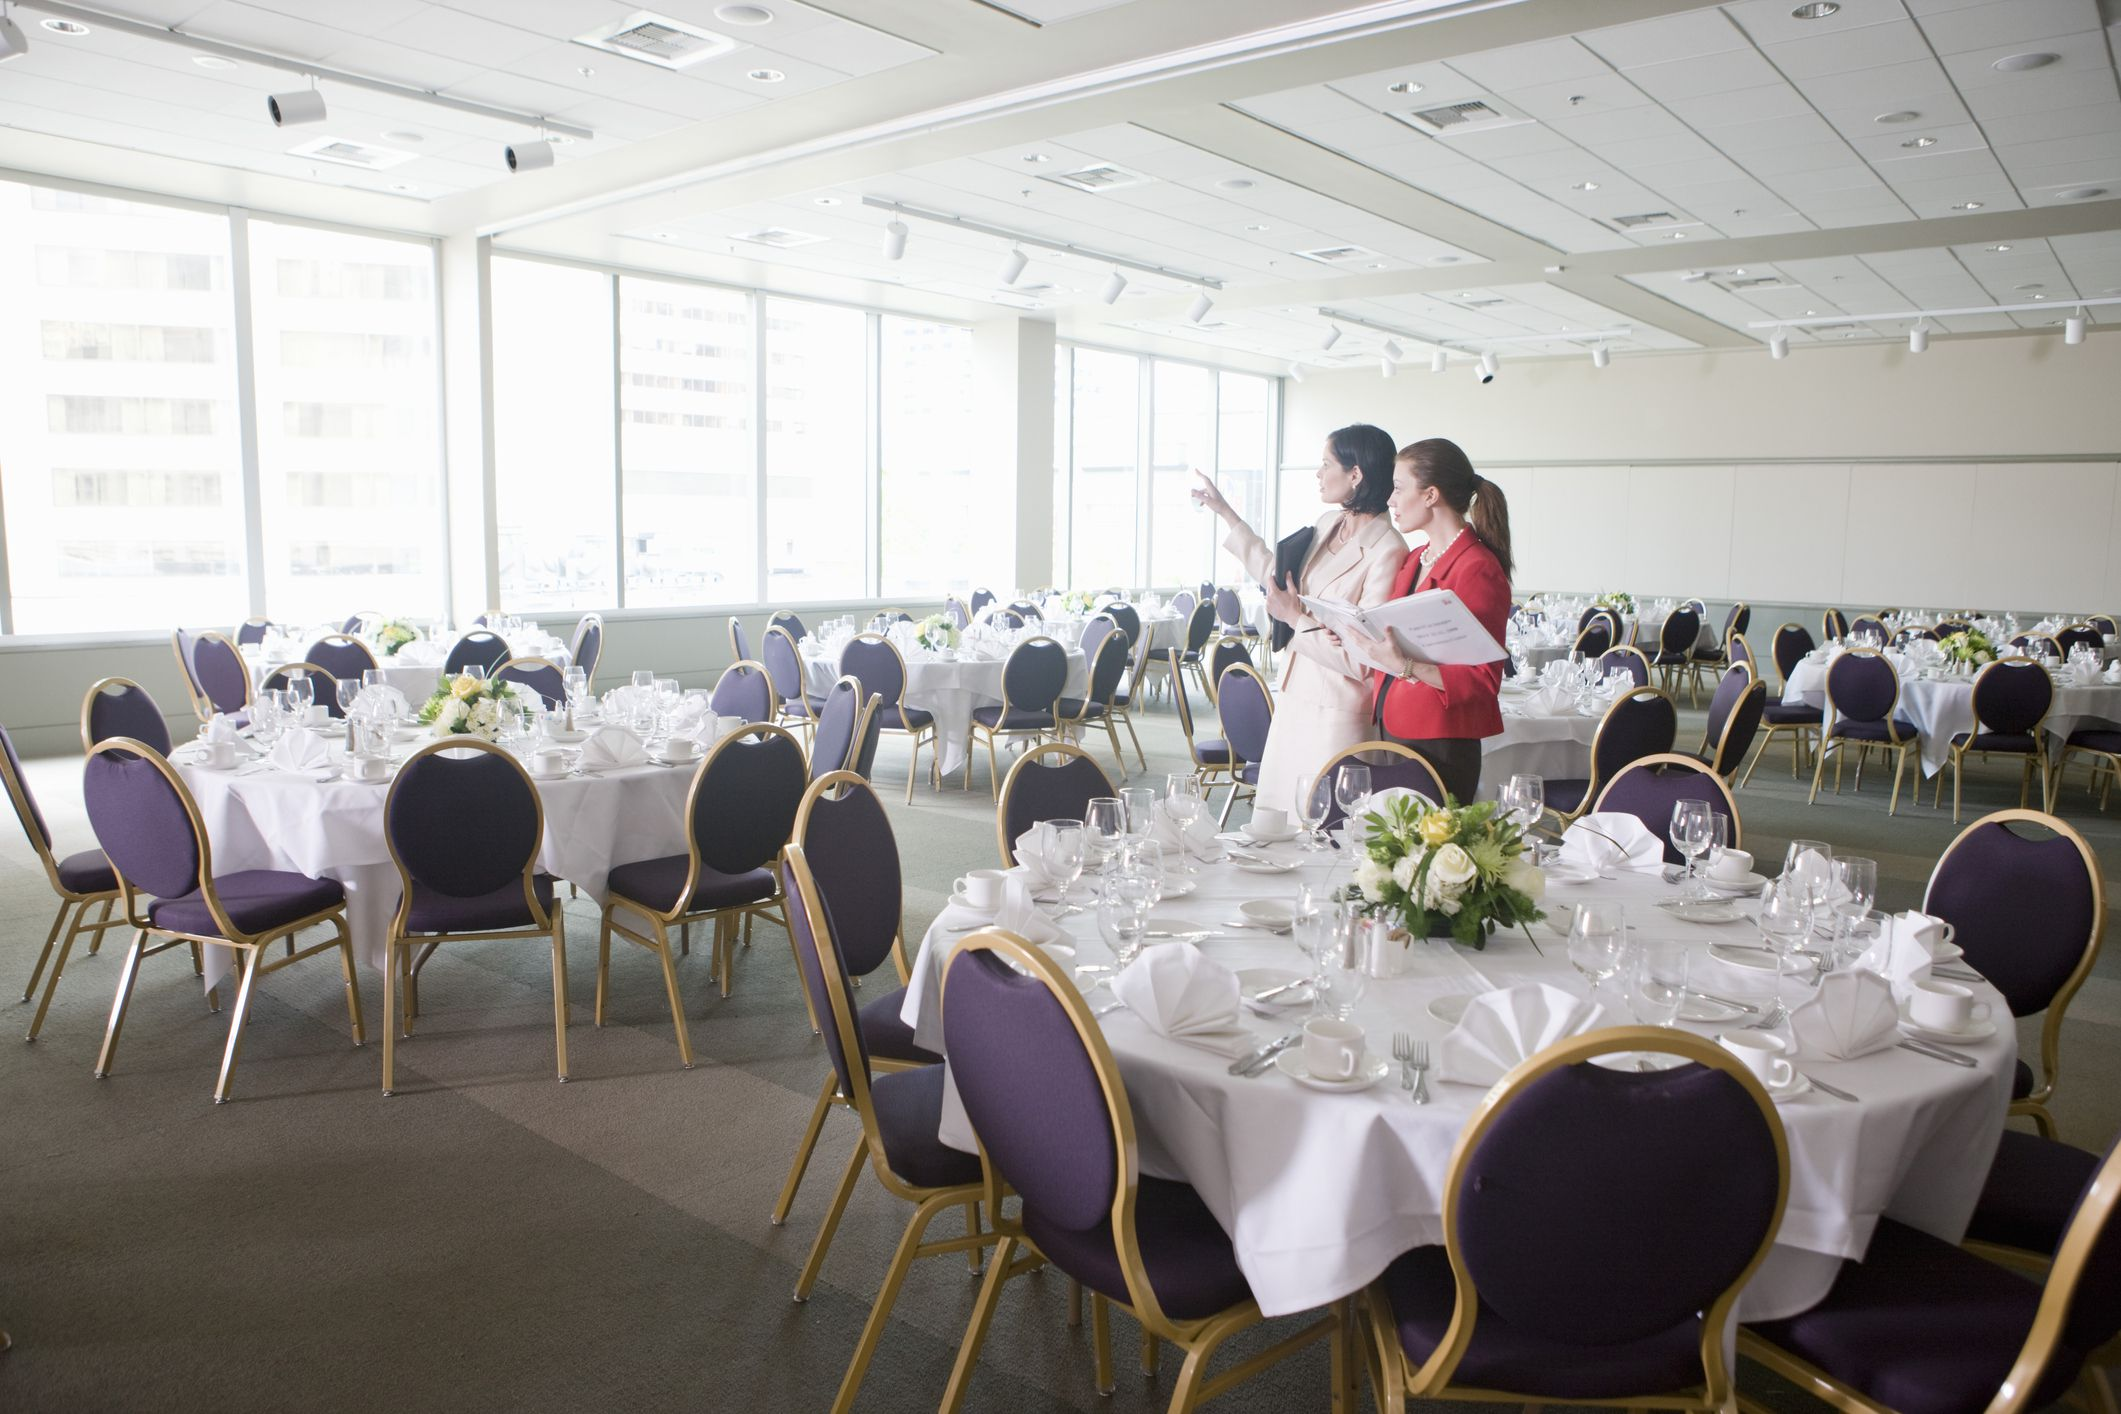 How to Market an Event Management Company